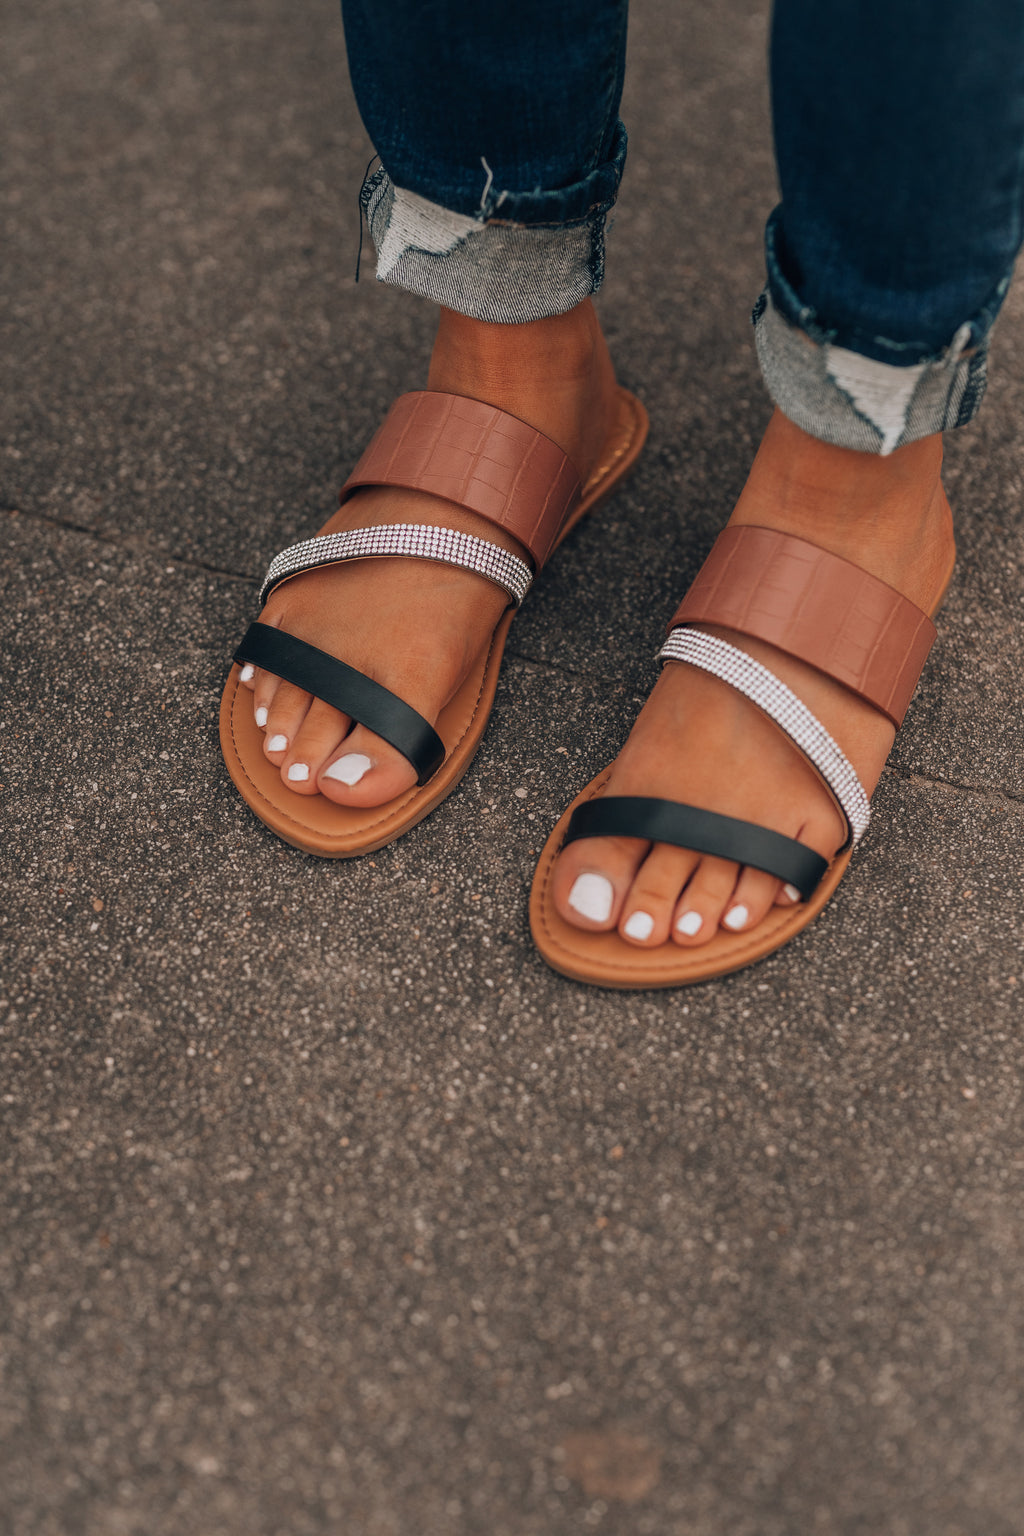 Rhine And Shine Sandals